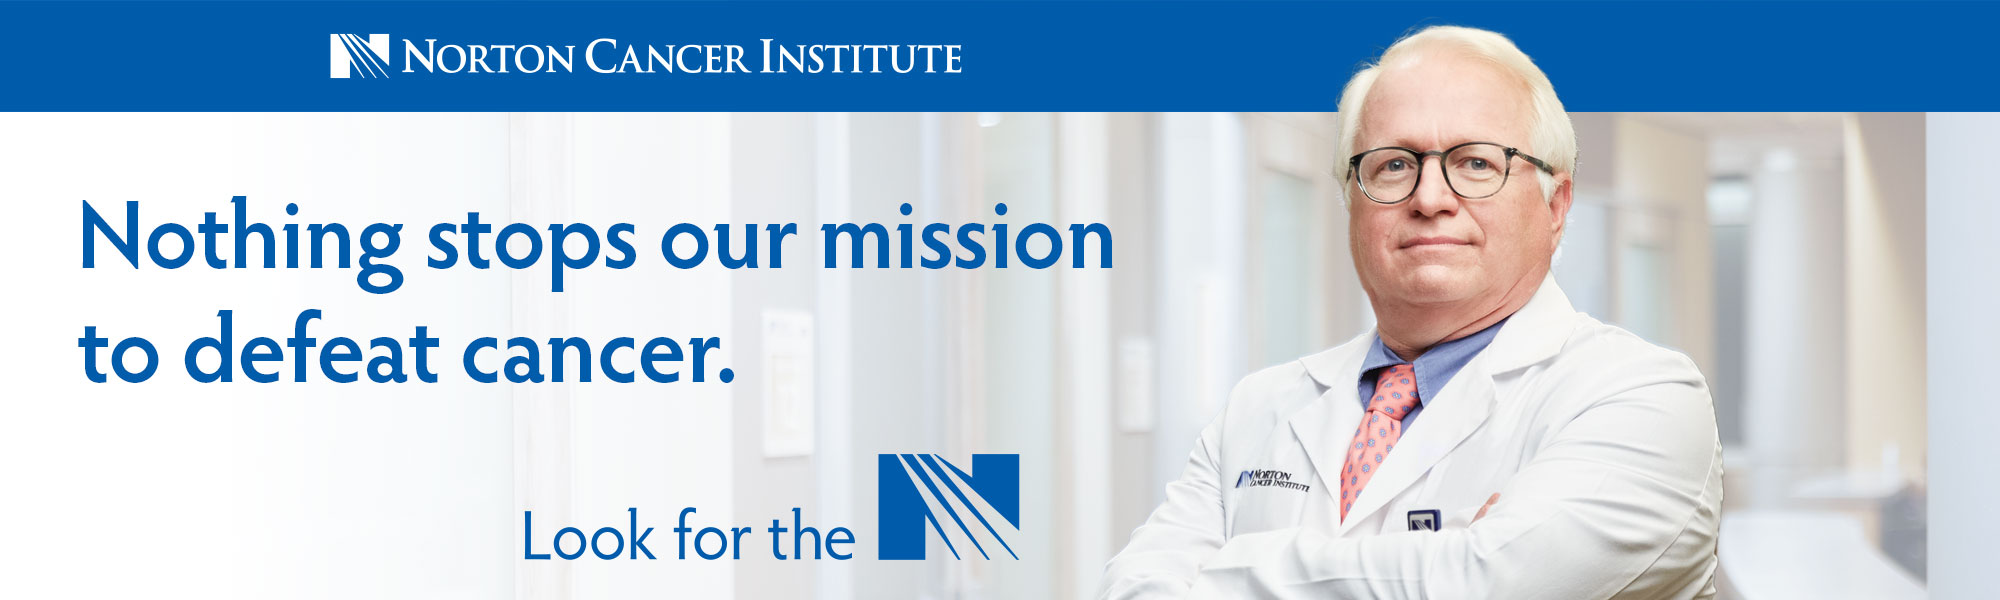 Nothing stops our mission to defeat cancer.